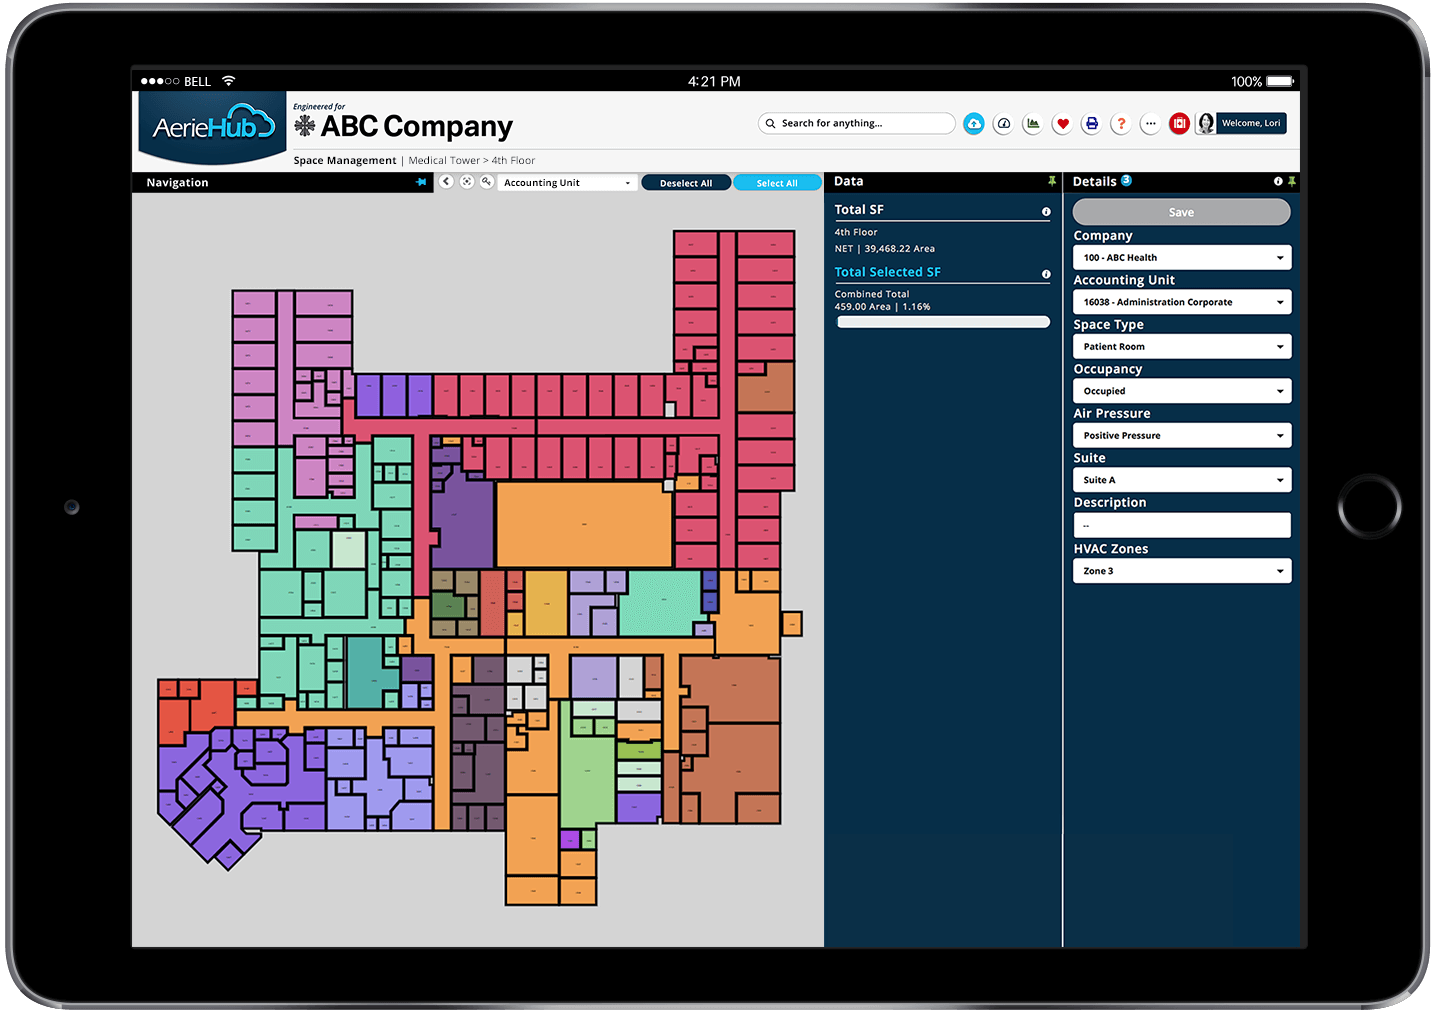 Space Management Module Image on Ipad